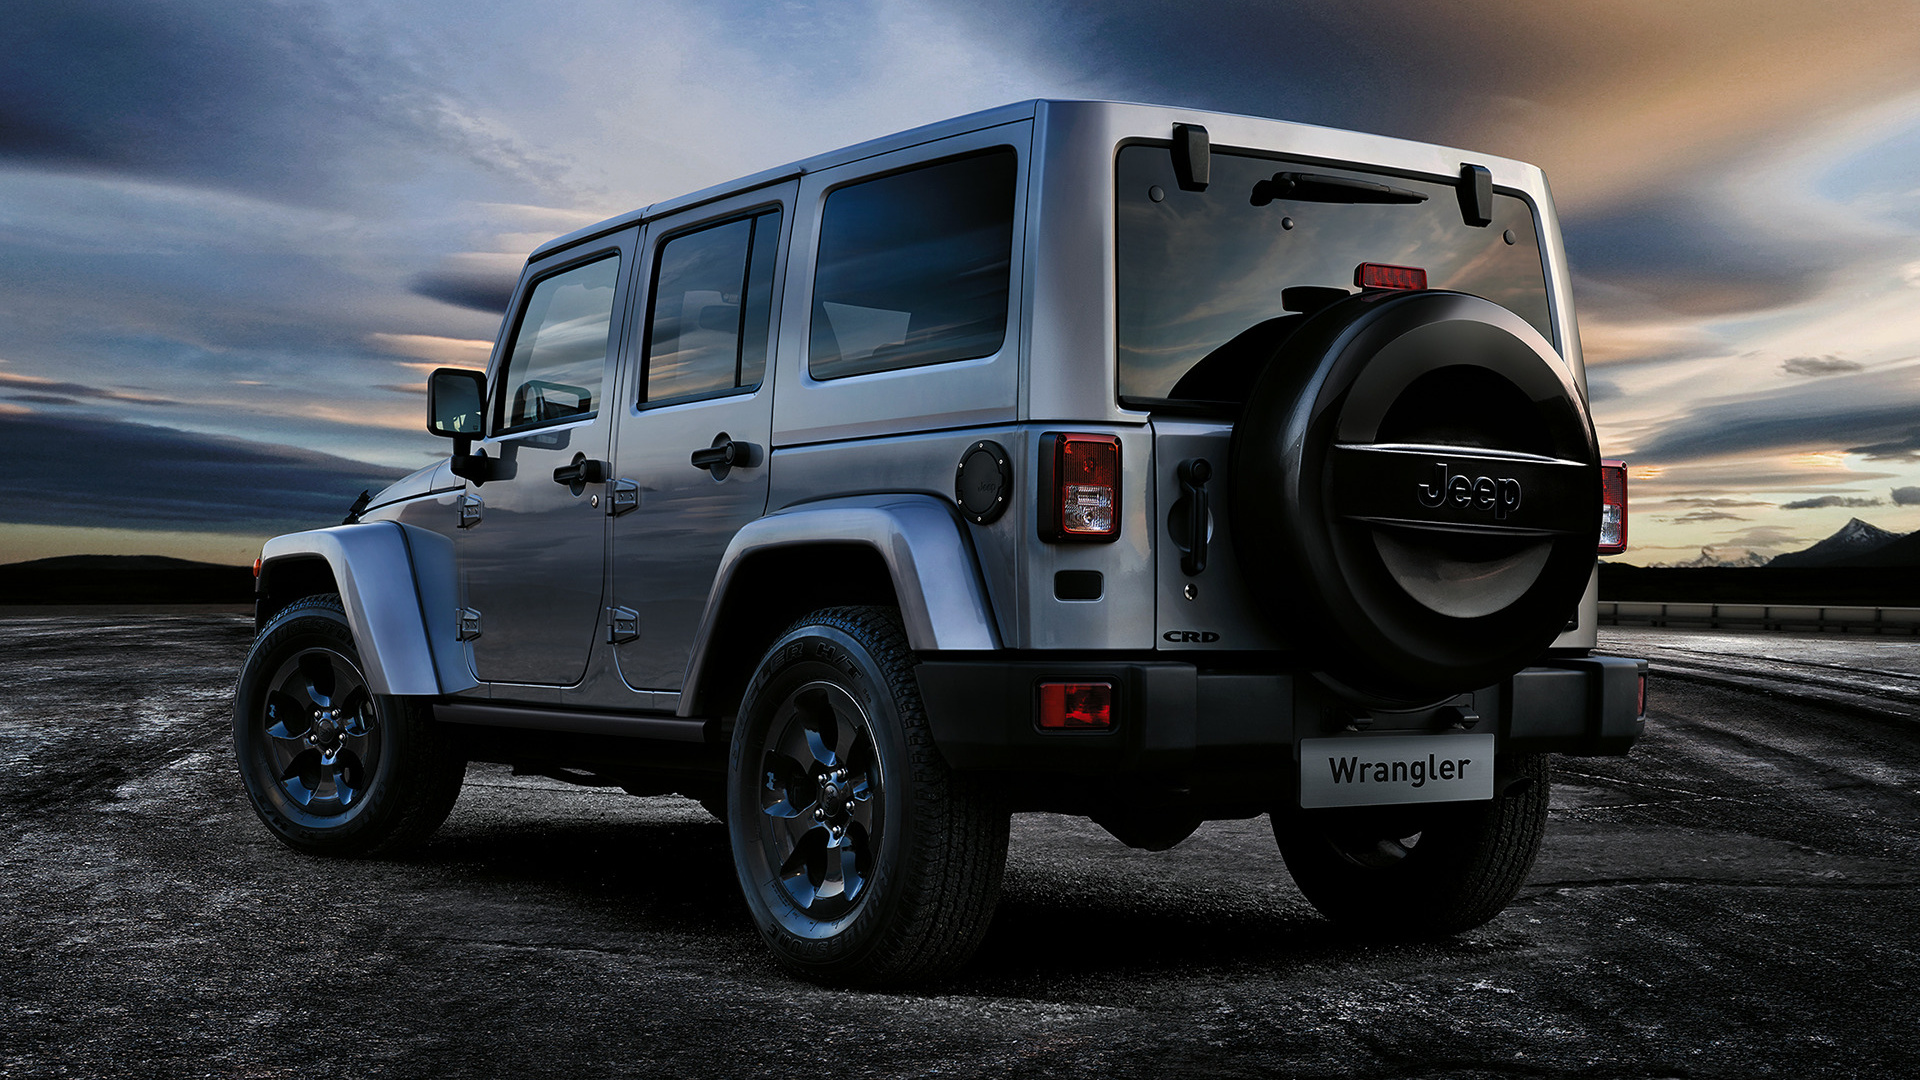 2015 Jeep Wrangler Unlimited Black Edition Ii Wallpapers